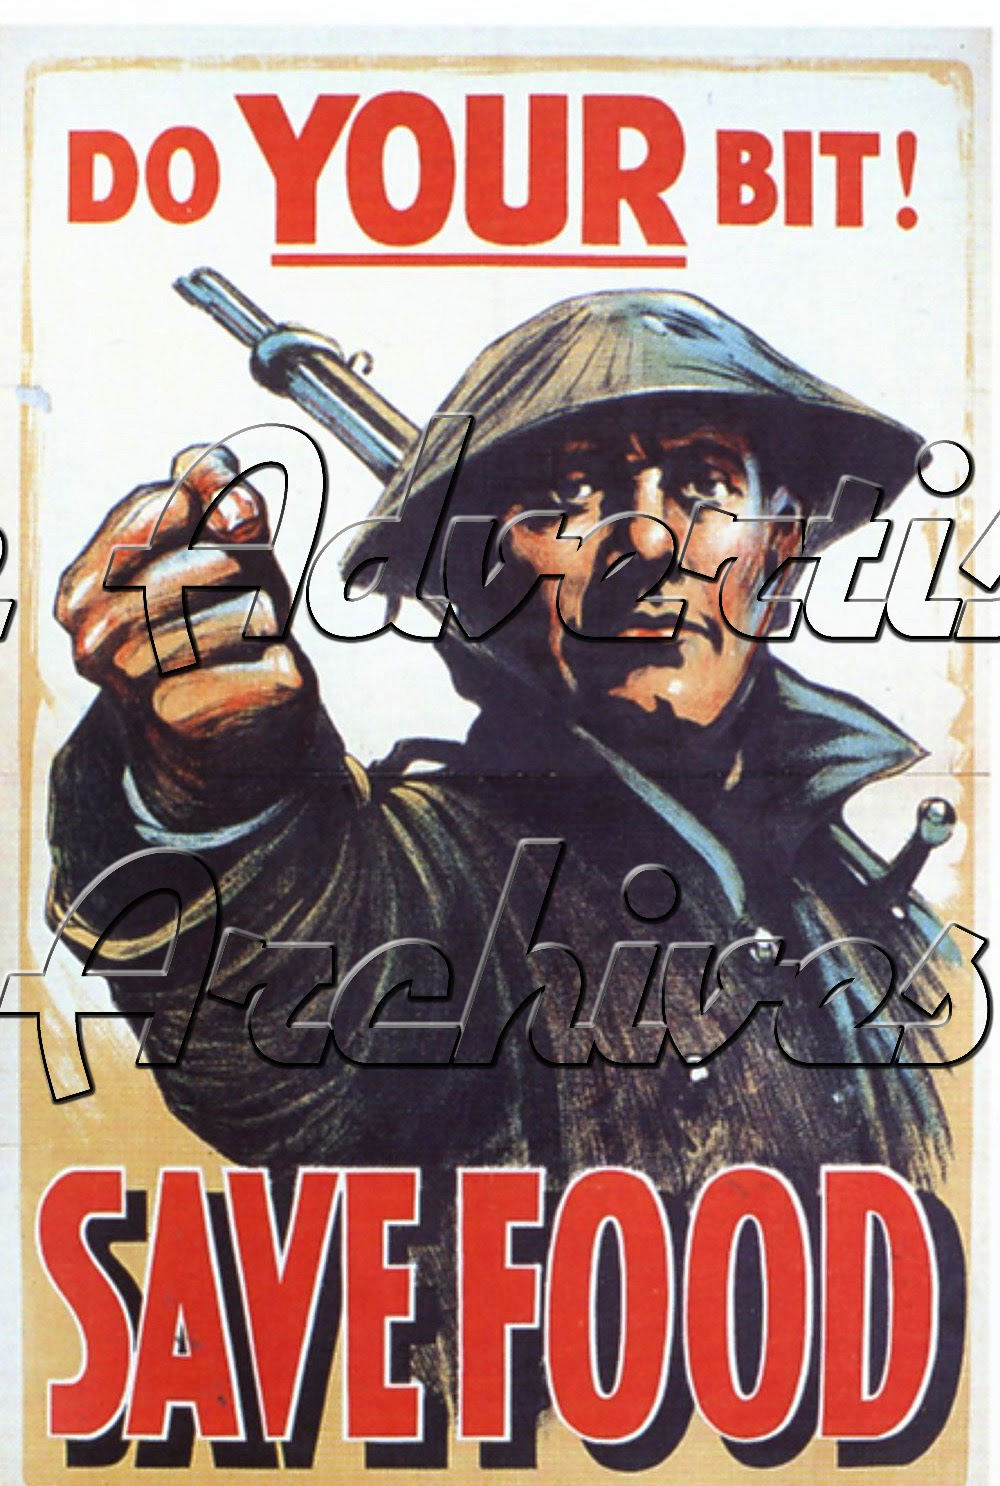 http://www.advertisingarchives.co.uk/index.php?service=search&action=do_quick_search&language=en&q=ww1